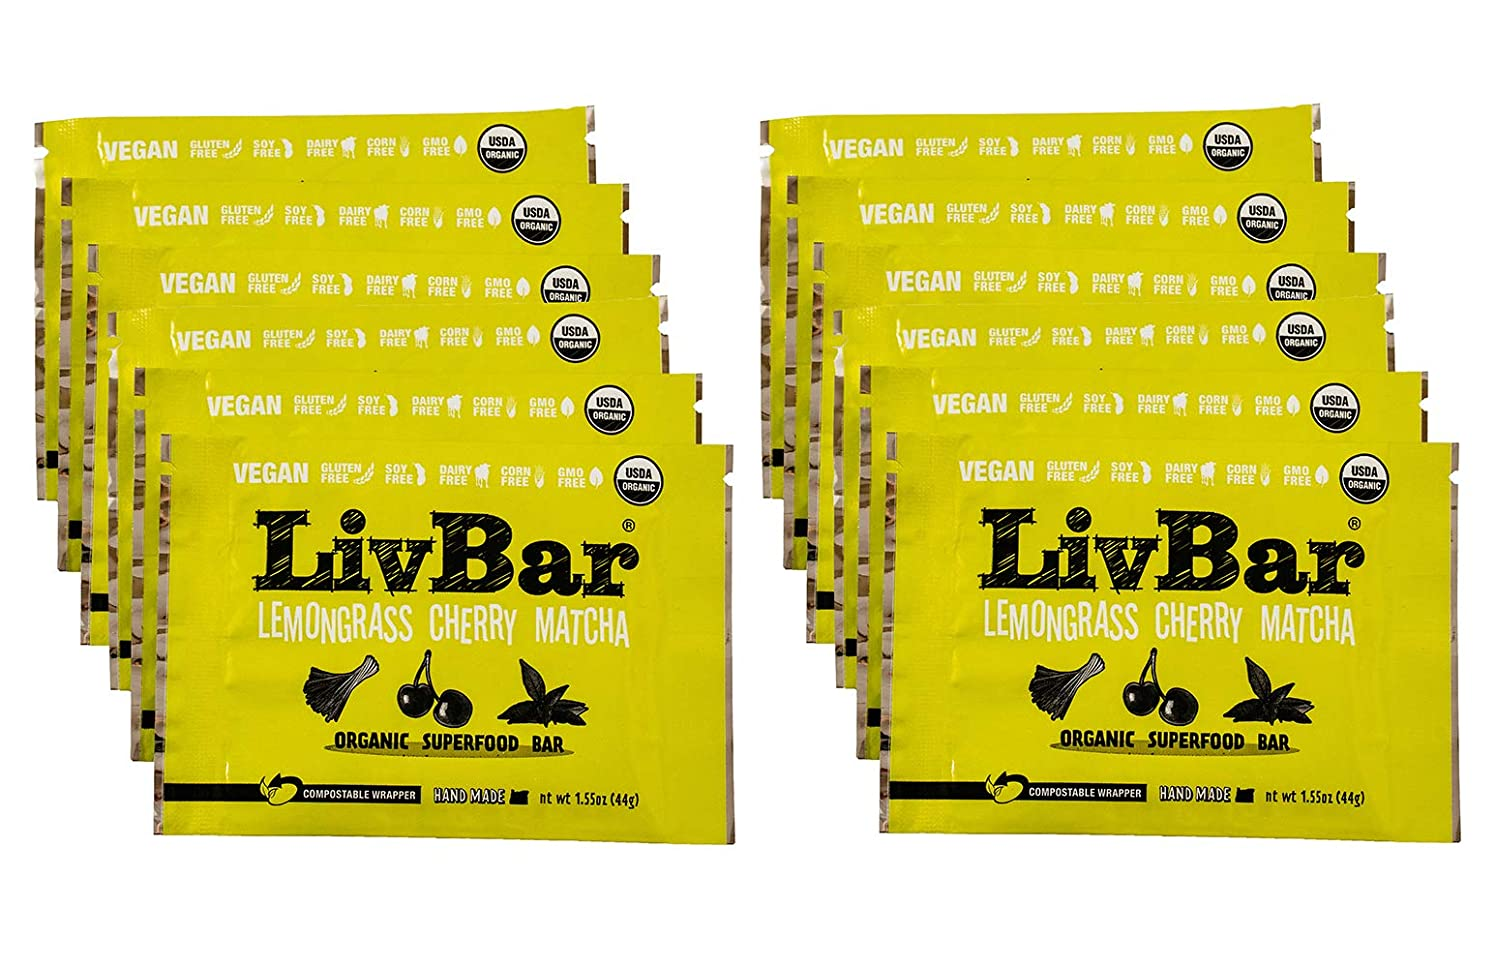 LivBar Organic All Natural Vegan Macro Snack Bar - Lemongrass Cherry Matcha, 12 Count - Healthy & Delicious Non GMO Gluten, Nut, Soy and Dairy Free Protein Bar with Low Sugar.